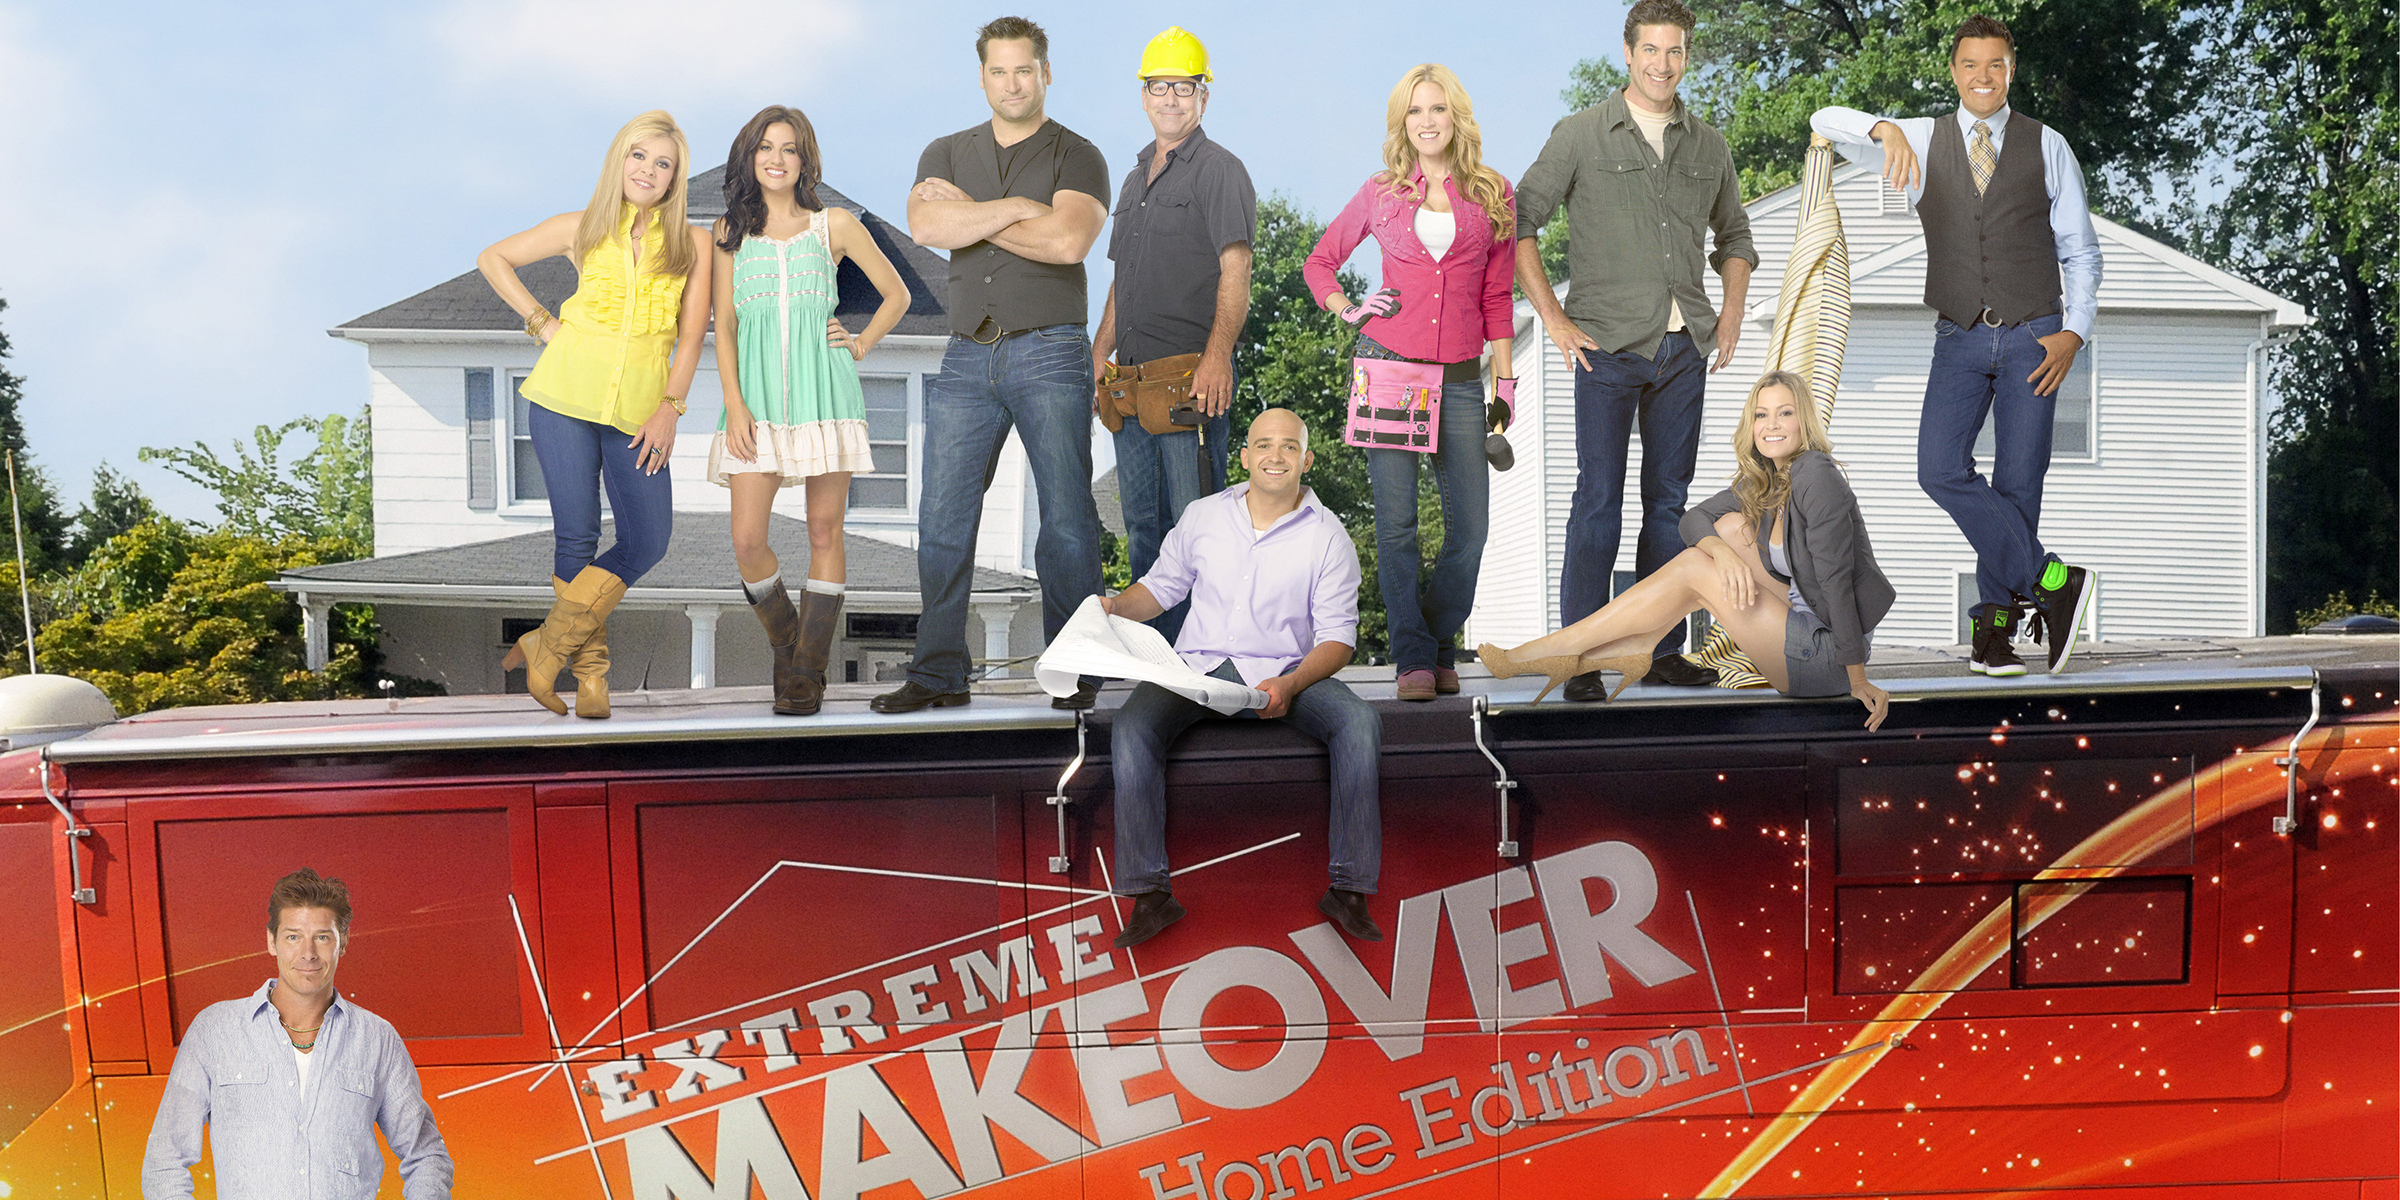 American Home Makeover extreme makeover: home edition' will return on hgtv — here's